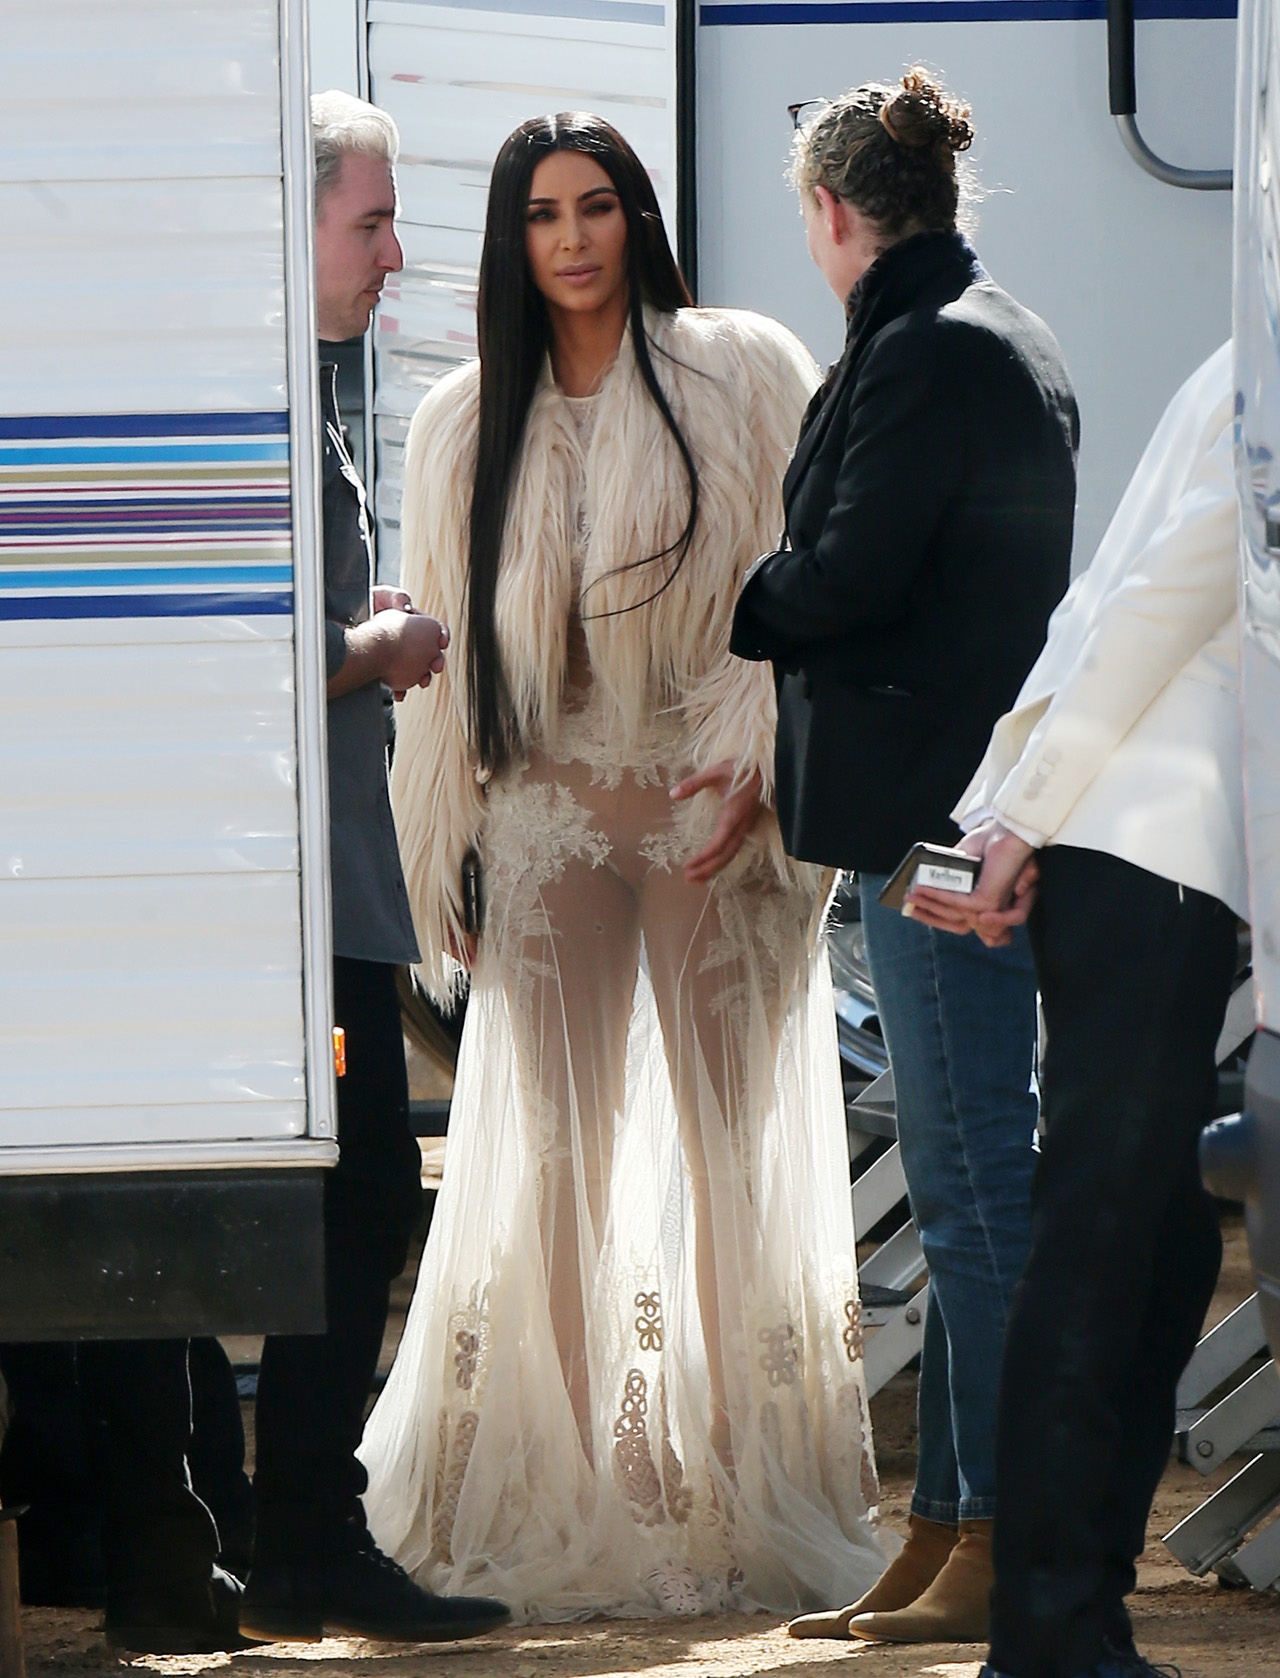 Kim Kardashian filming scenes for Ocean's Eight in Downtown Los Angeles. <P> Pictured: Kim Kardashian <B>Ref: SPL1457449  060317  </B><BR/> Picture by: Clint Brewer / Splash News<BR/> </P><P> <B>Splash News and Pictures</B><BR/> Los Angeles:310-821-2666<BR/> New York:212-619-2666<BR/> London:870-934-2666<BR/> photodesk@splashnews.com<BR/> </P>